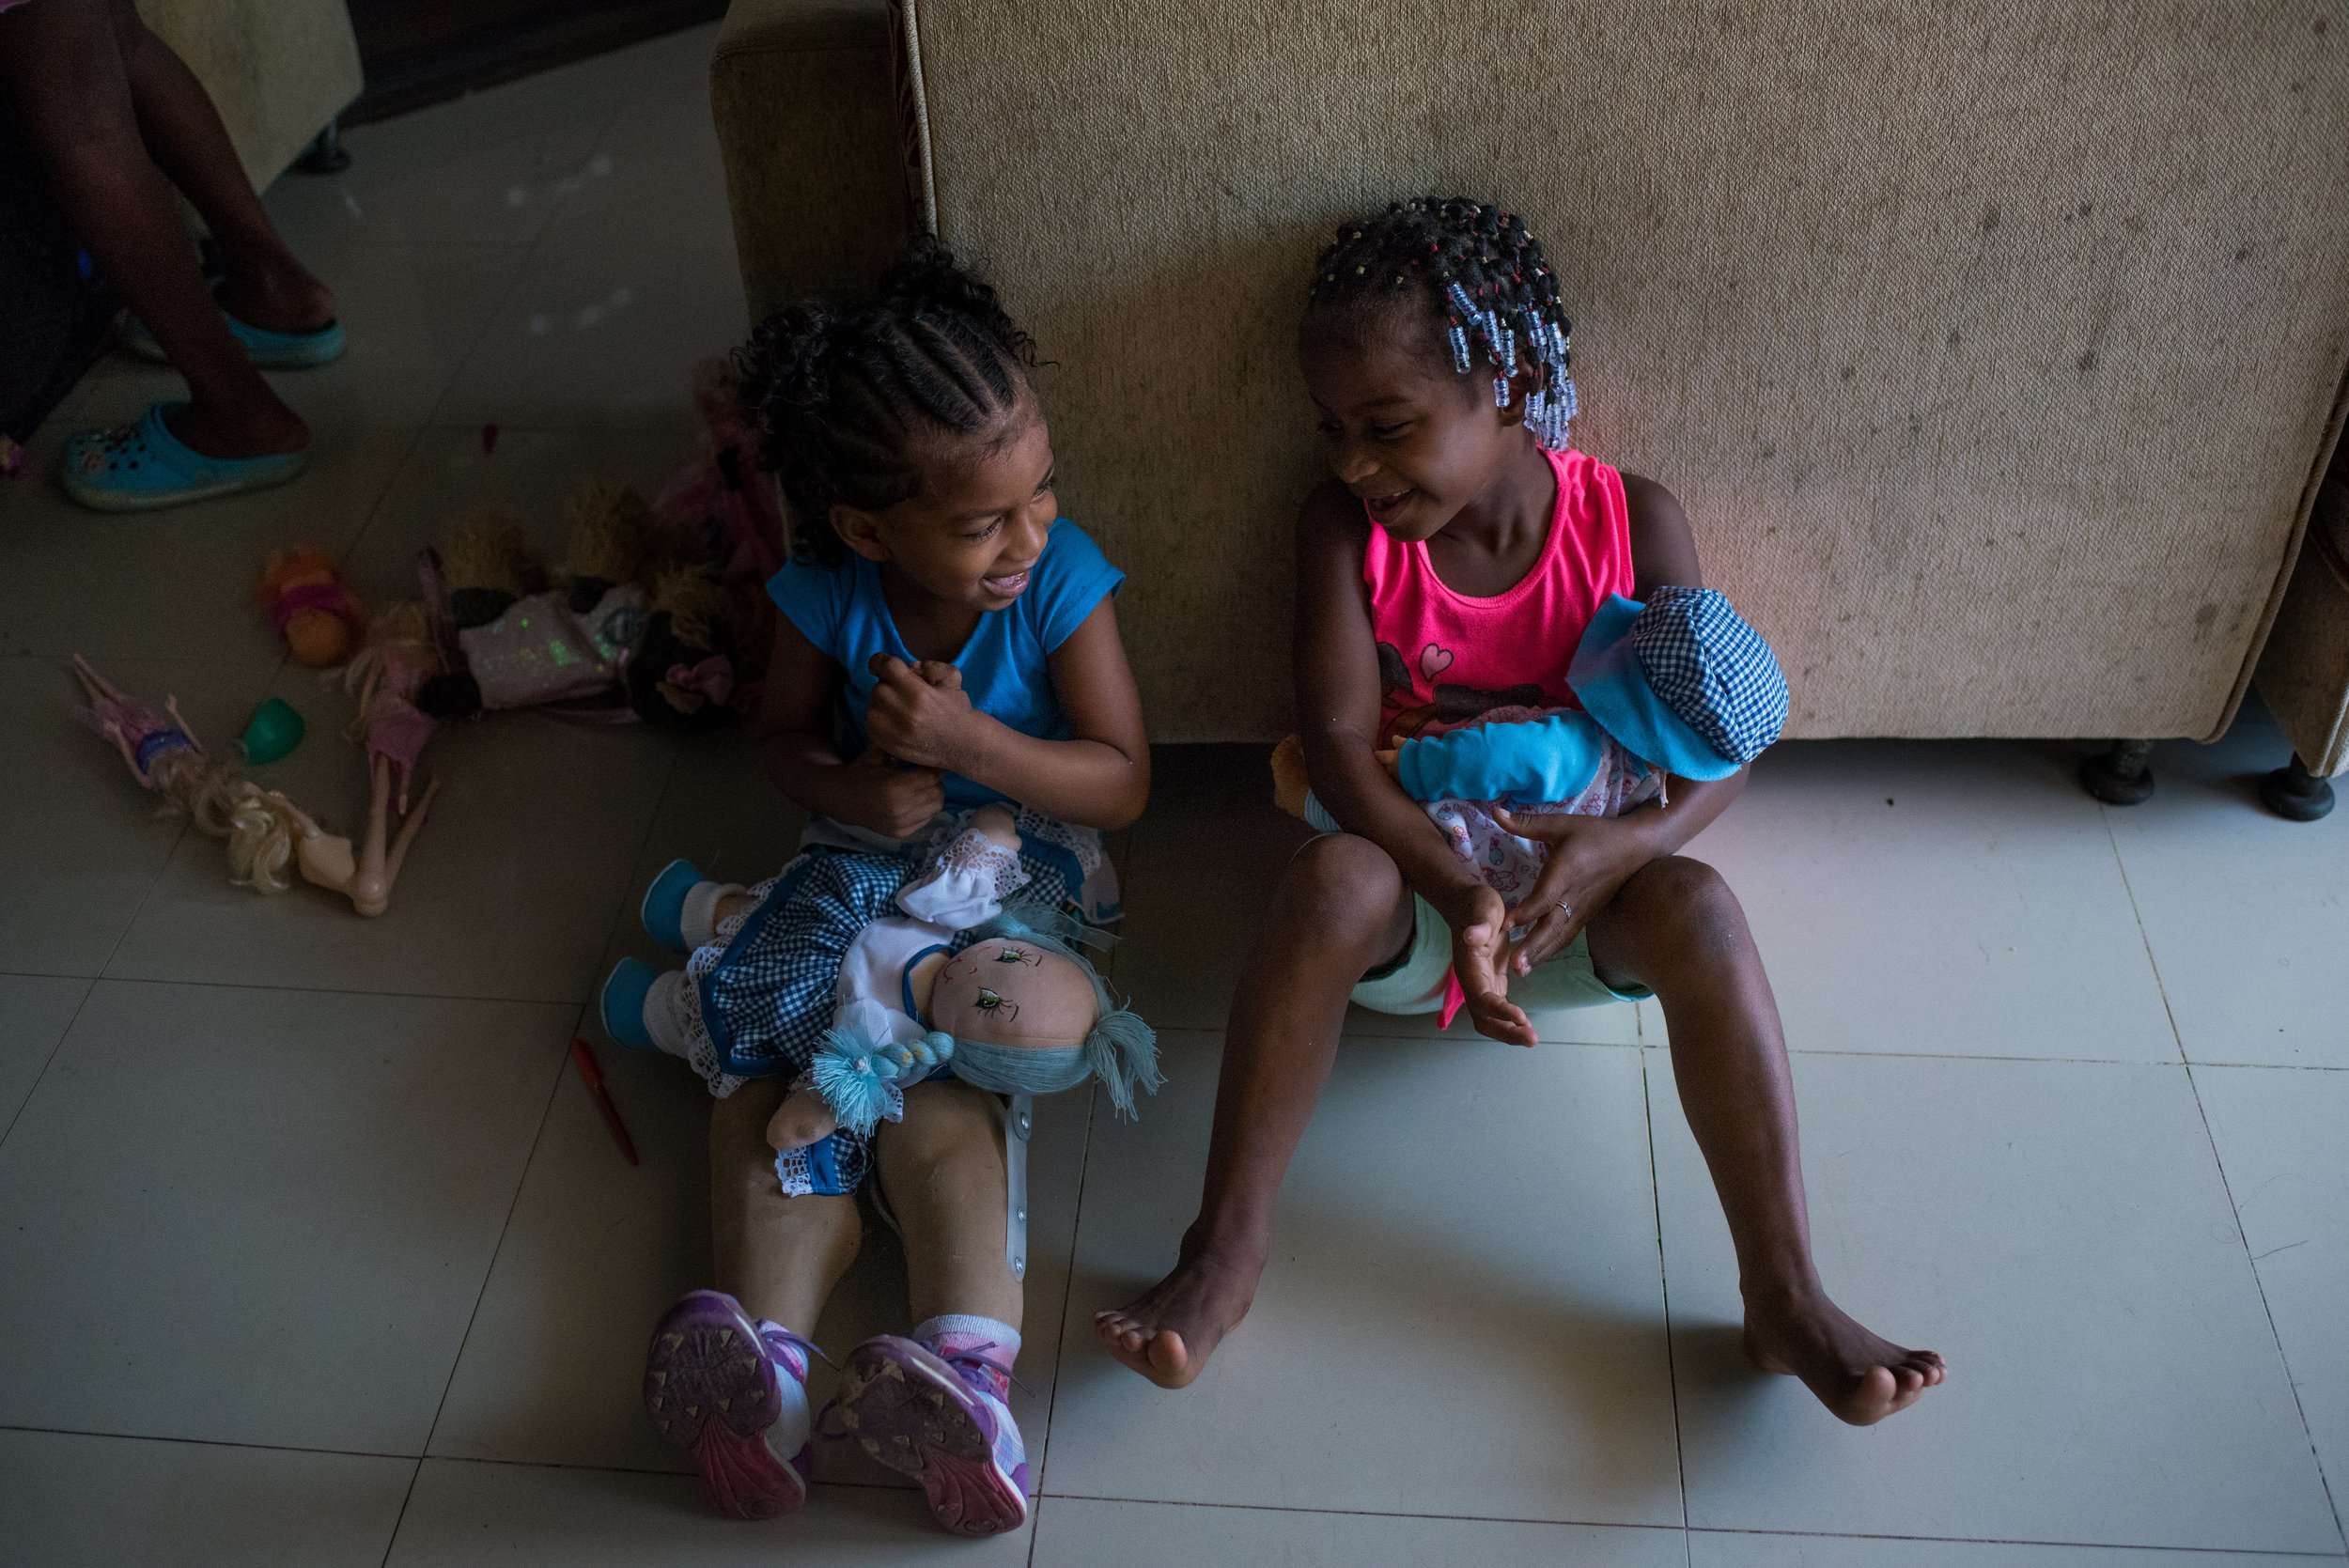 Ebony and her friend play with dolls. By age 3.5, Ebony's surgeries have helped her to live a life where she is capable of participating in everyday activities.